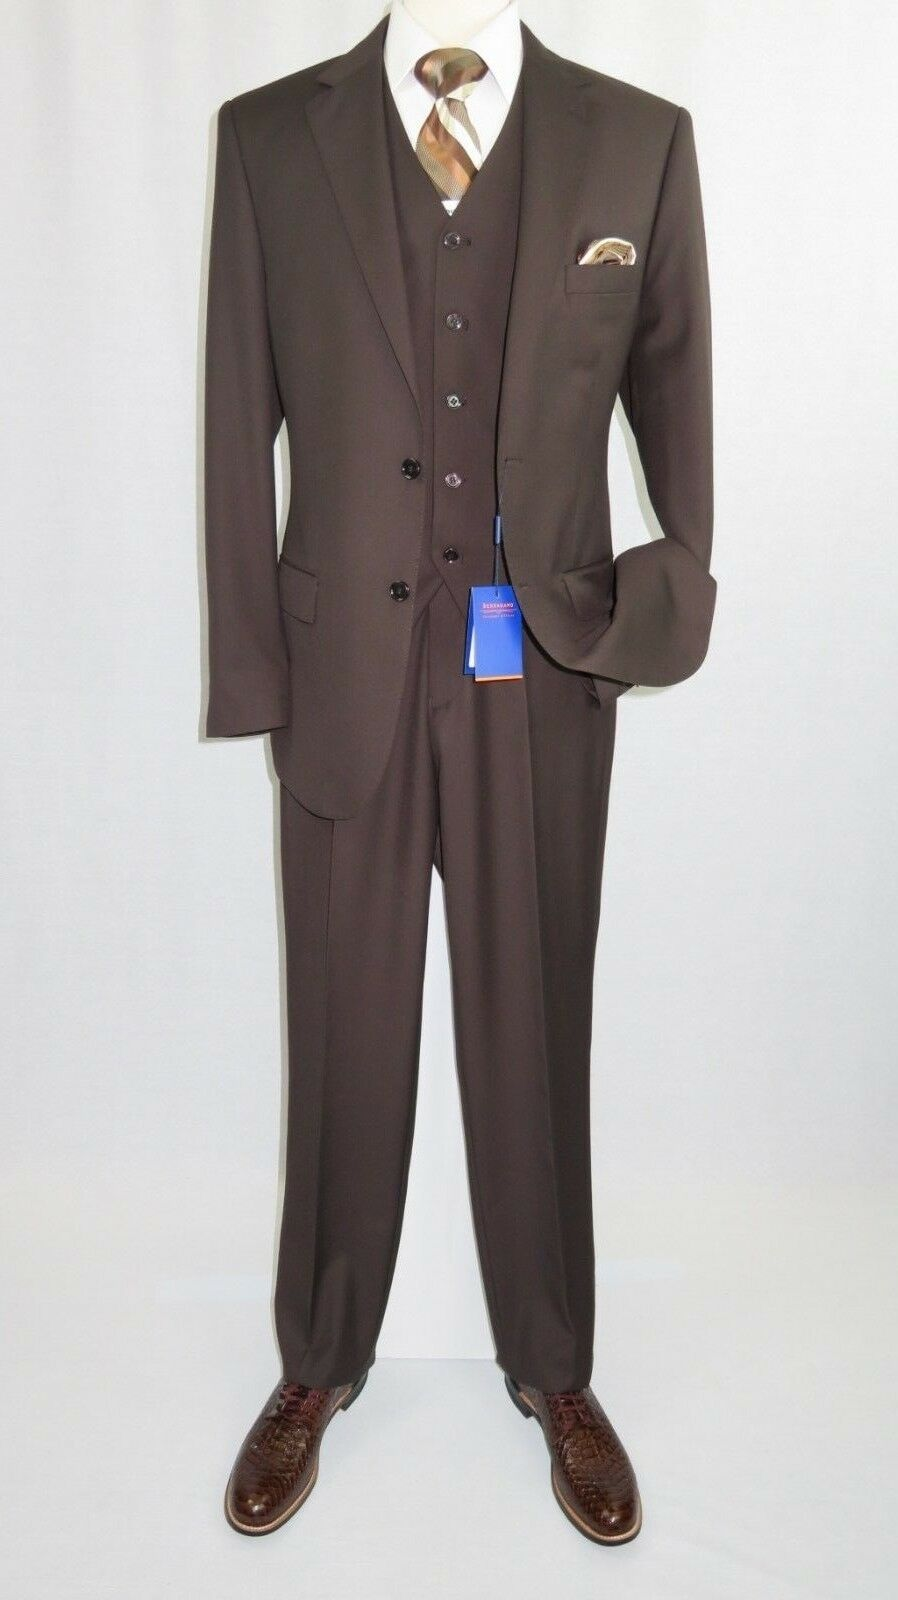 Primary image for Men BERRAGAMO 3pc Suit Vested Plain front Pants Side Vents Formal A6732 Brown